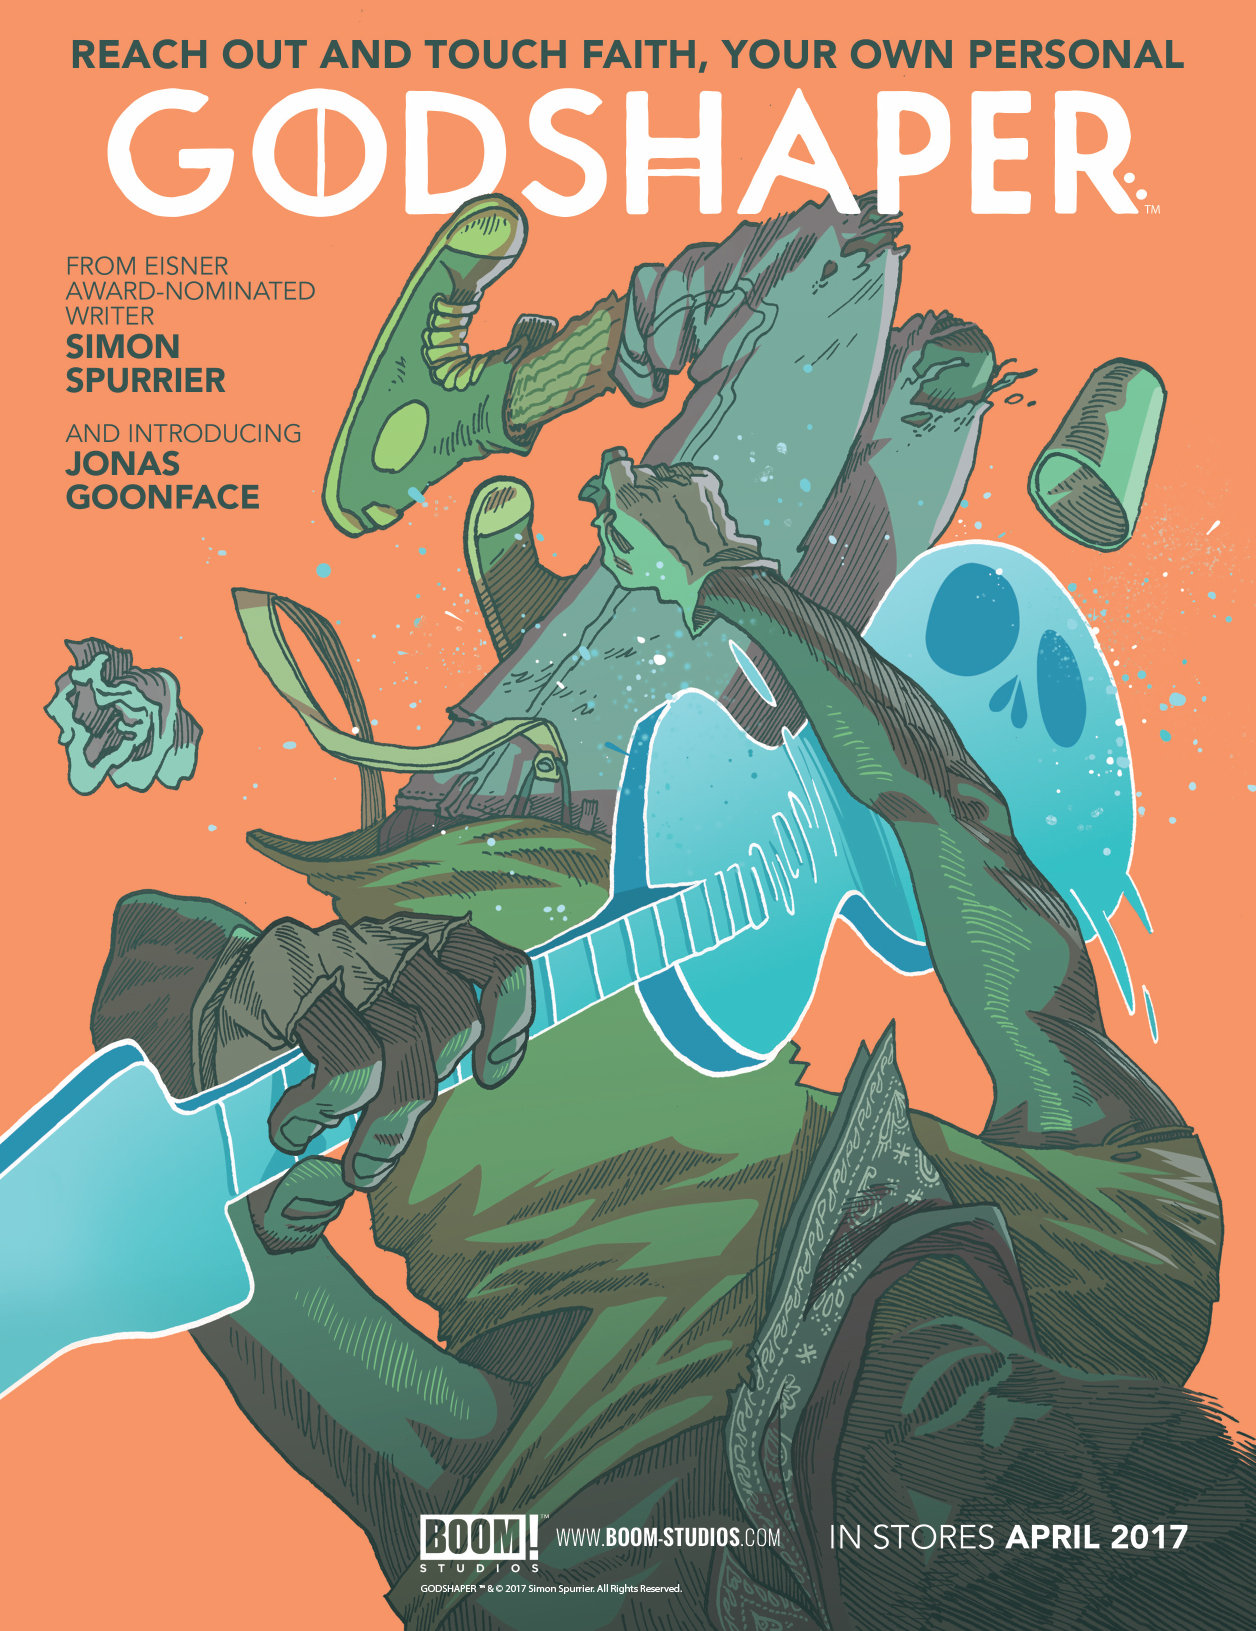 Godshaper #1 from Simon Spurrier and Jonas Goonface